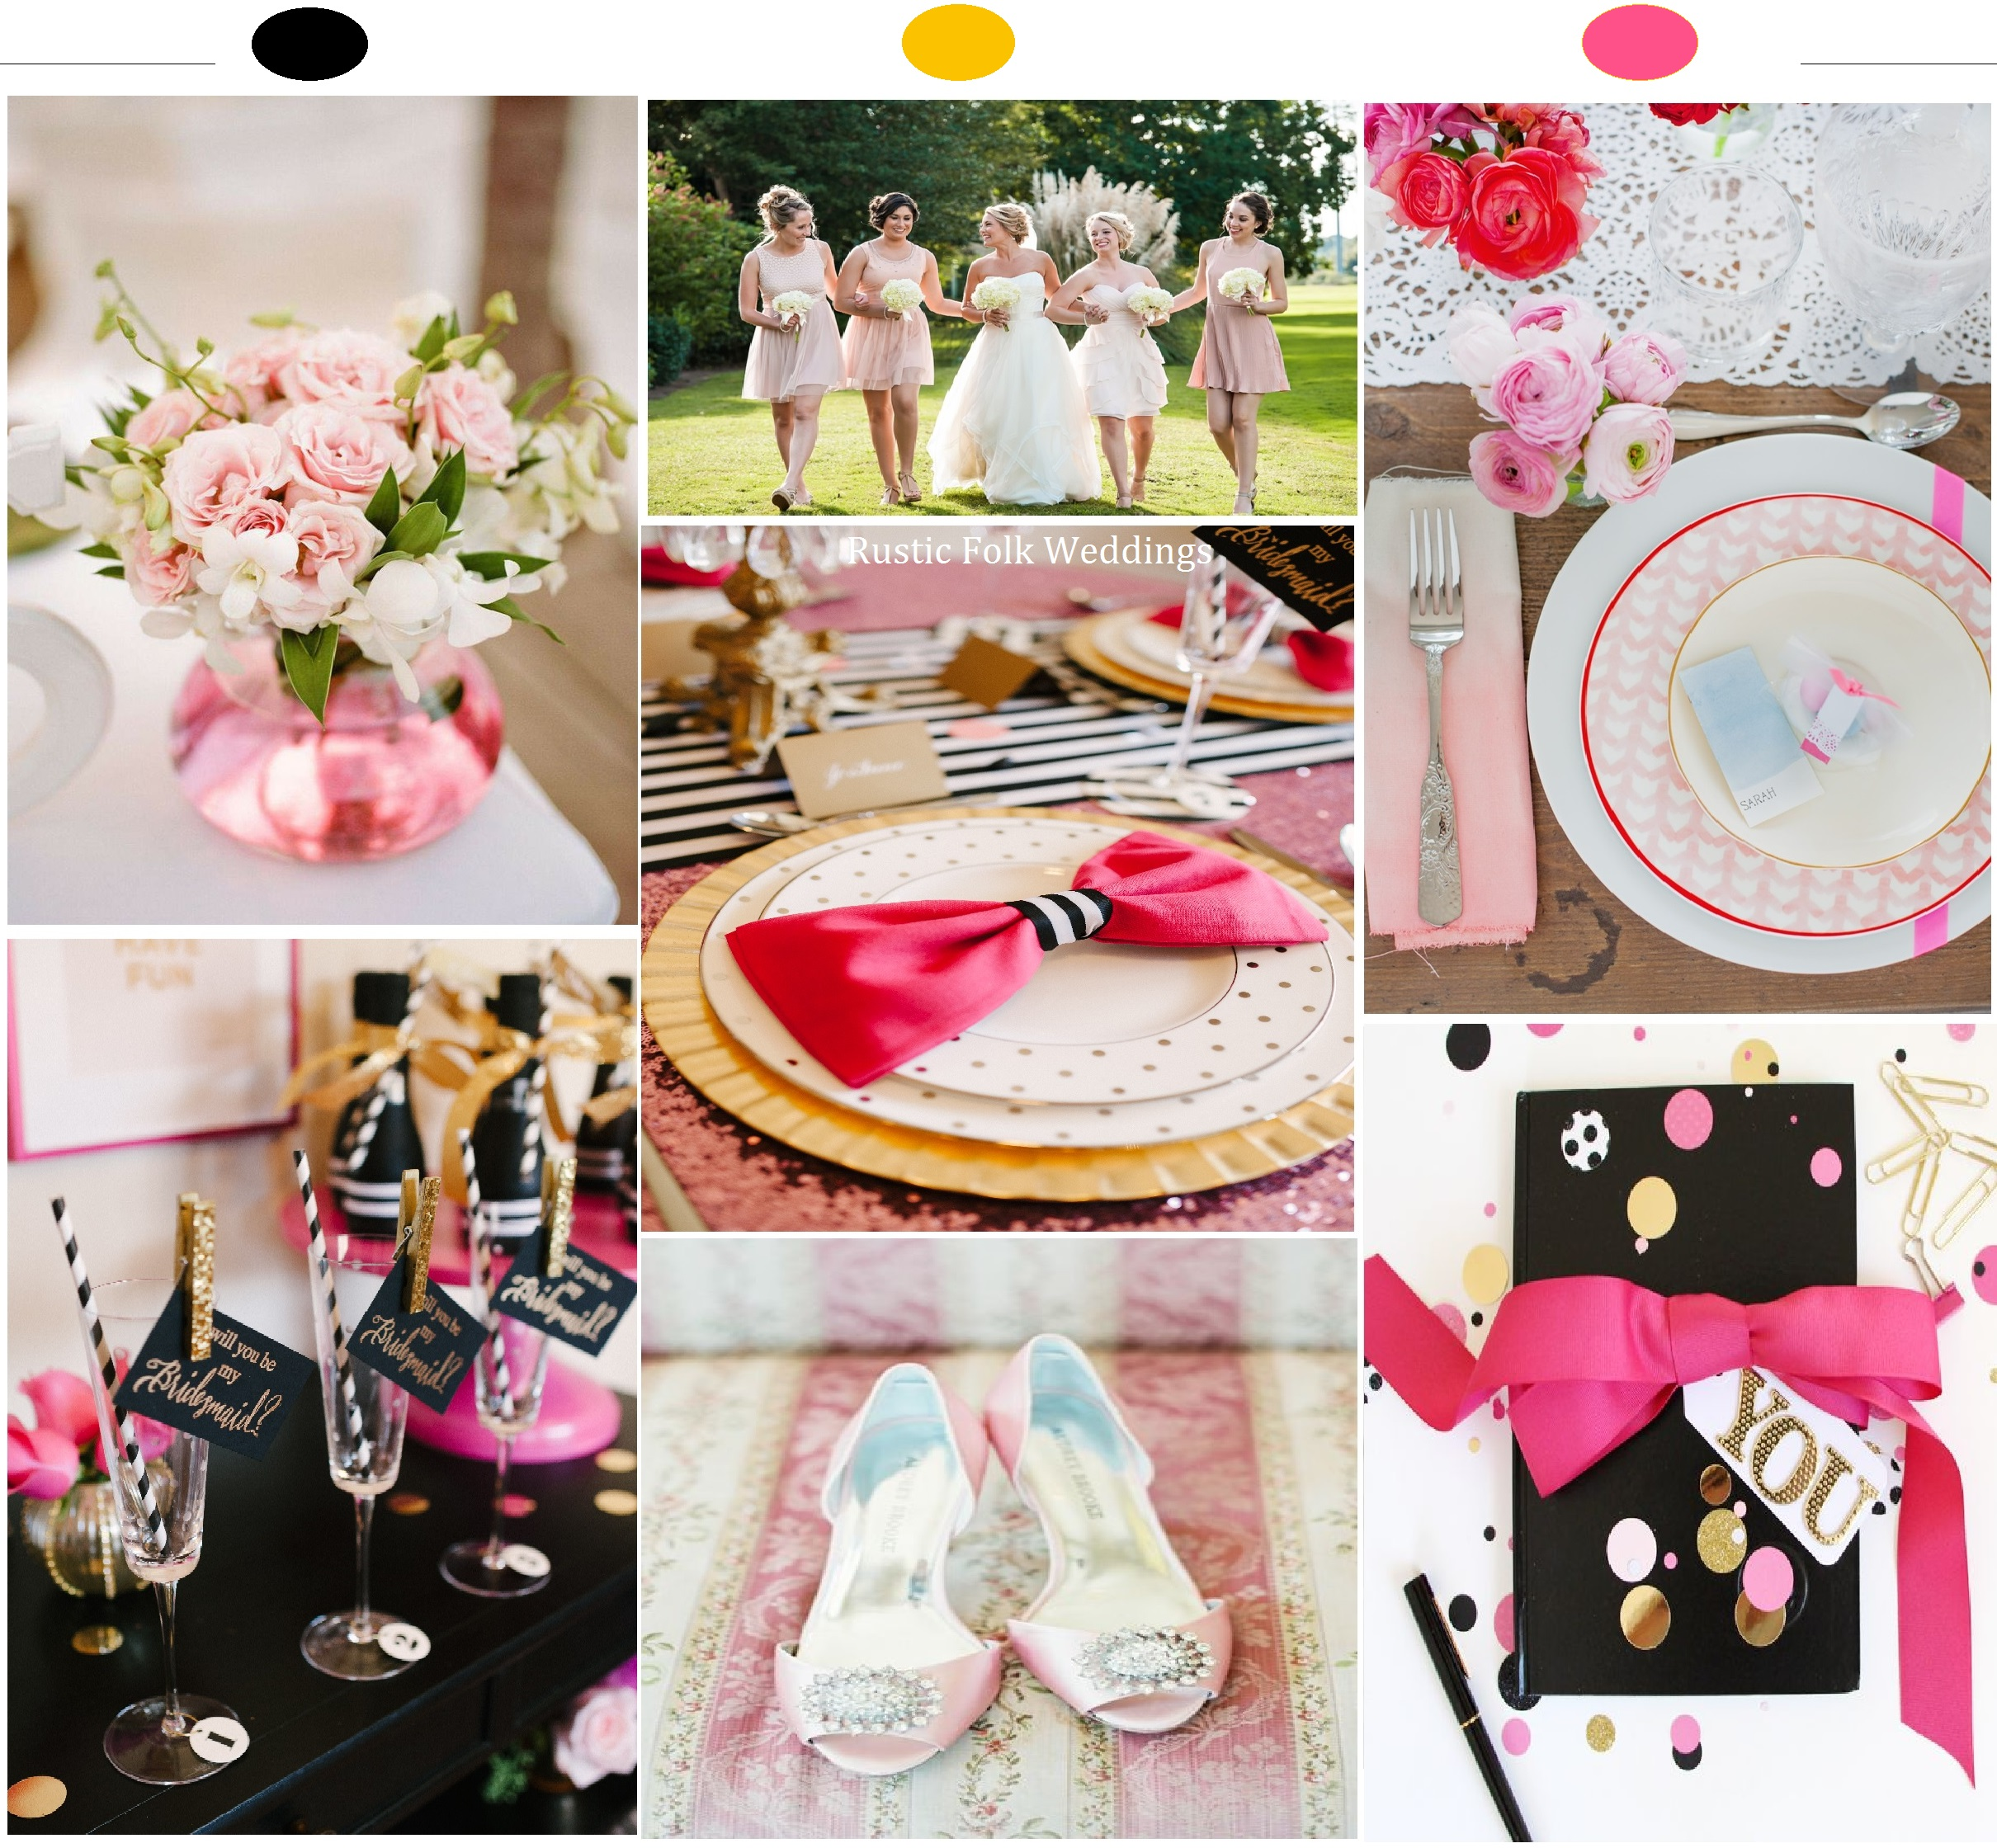 Pretty in Pink Wedding Inspiration Board 4